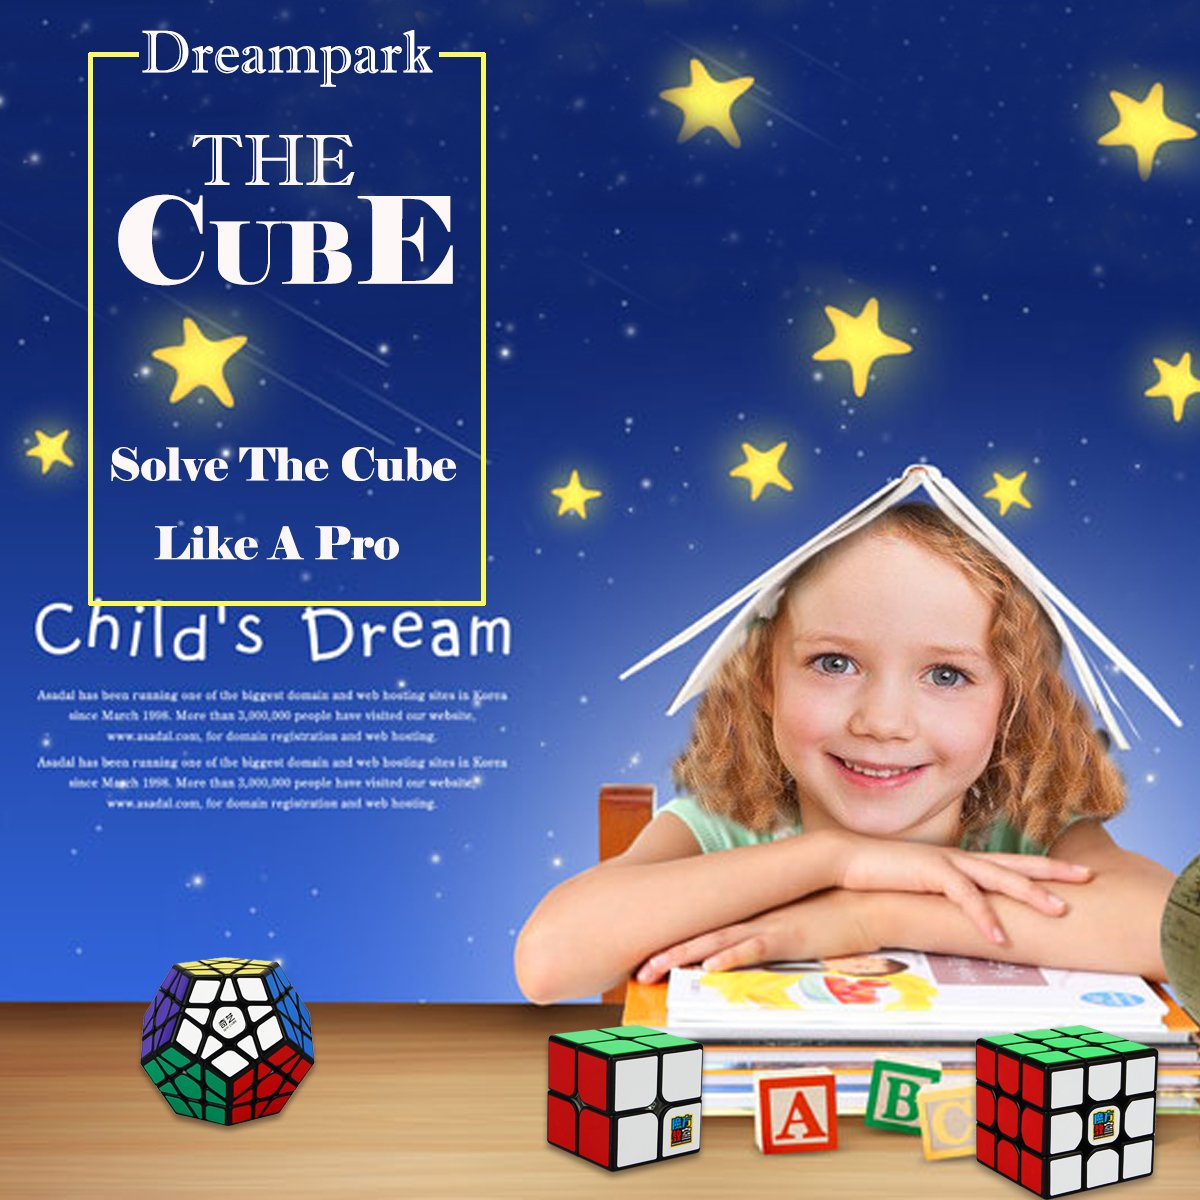 2x2x2 3x3x3 Pyramid Sticker Magic Cube Set Puzzle Cube Toys for Kids and Adults Dreampark Speed Cube Bundle 3 Pack